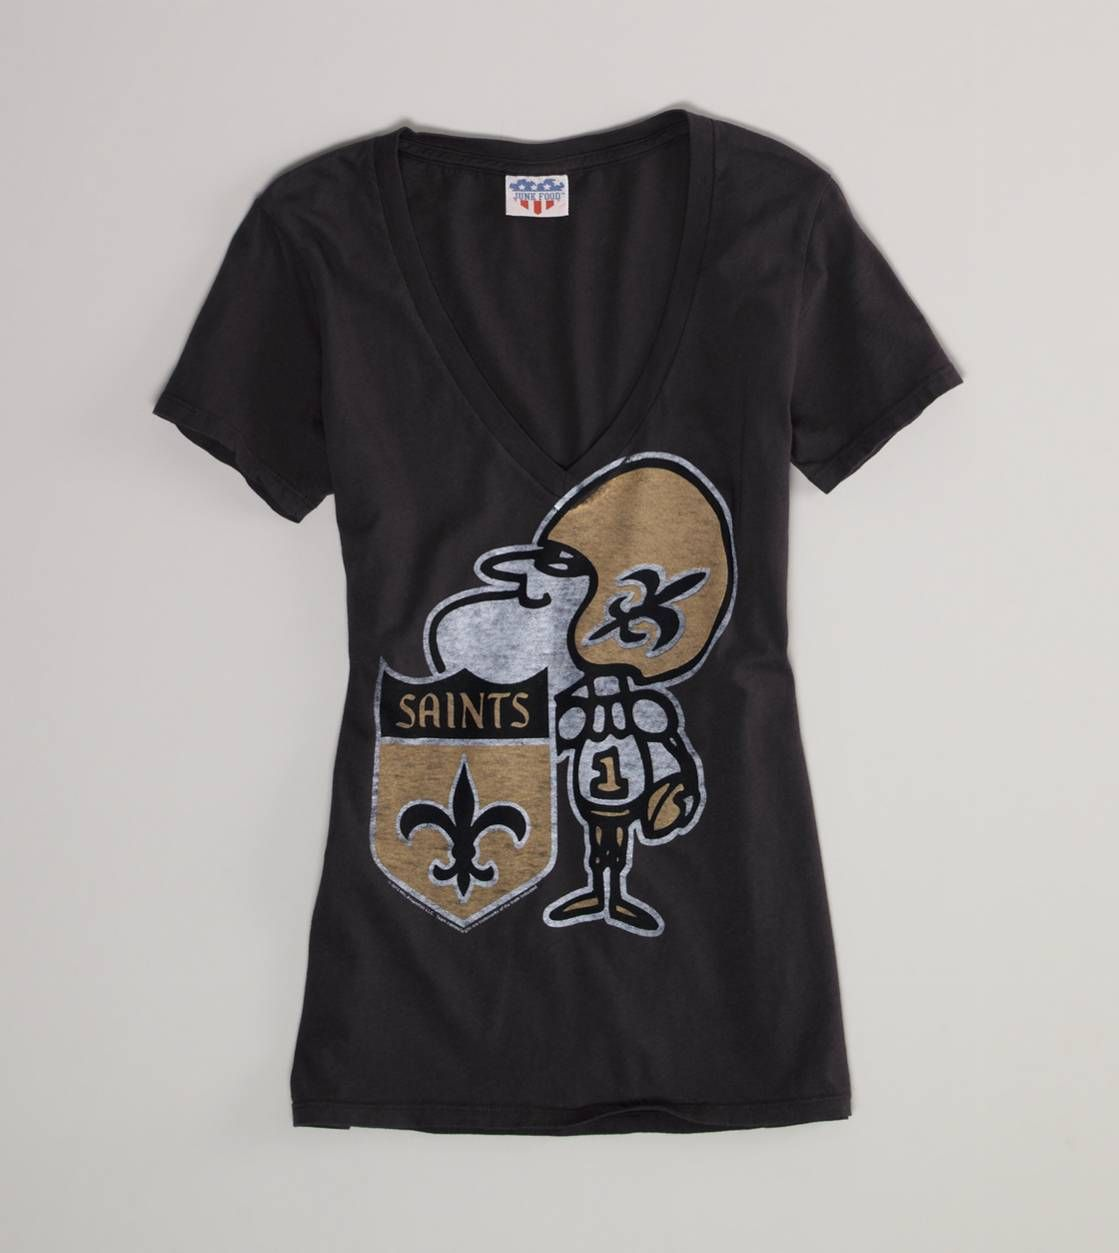 New Orleans Saints NFL T